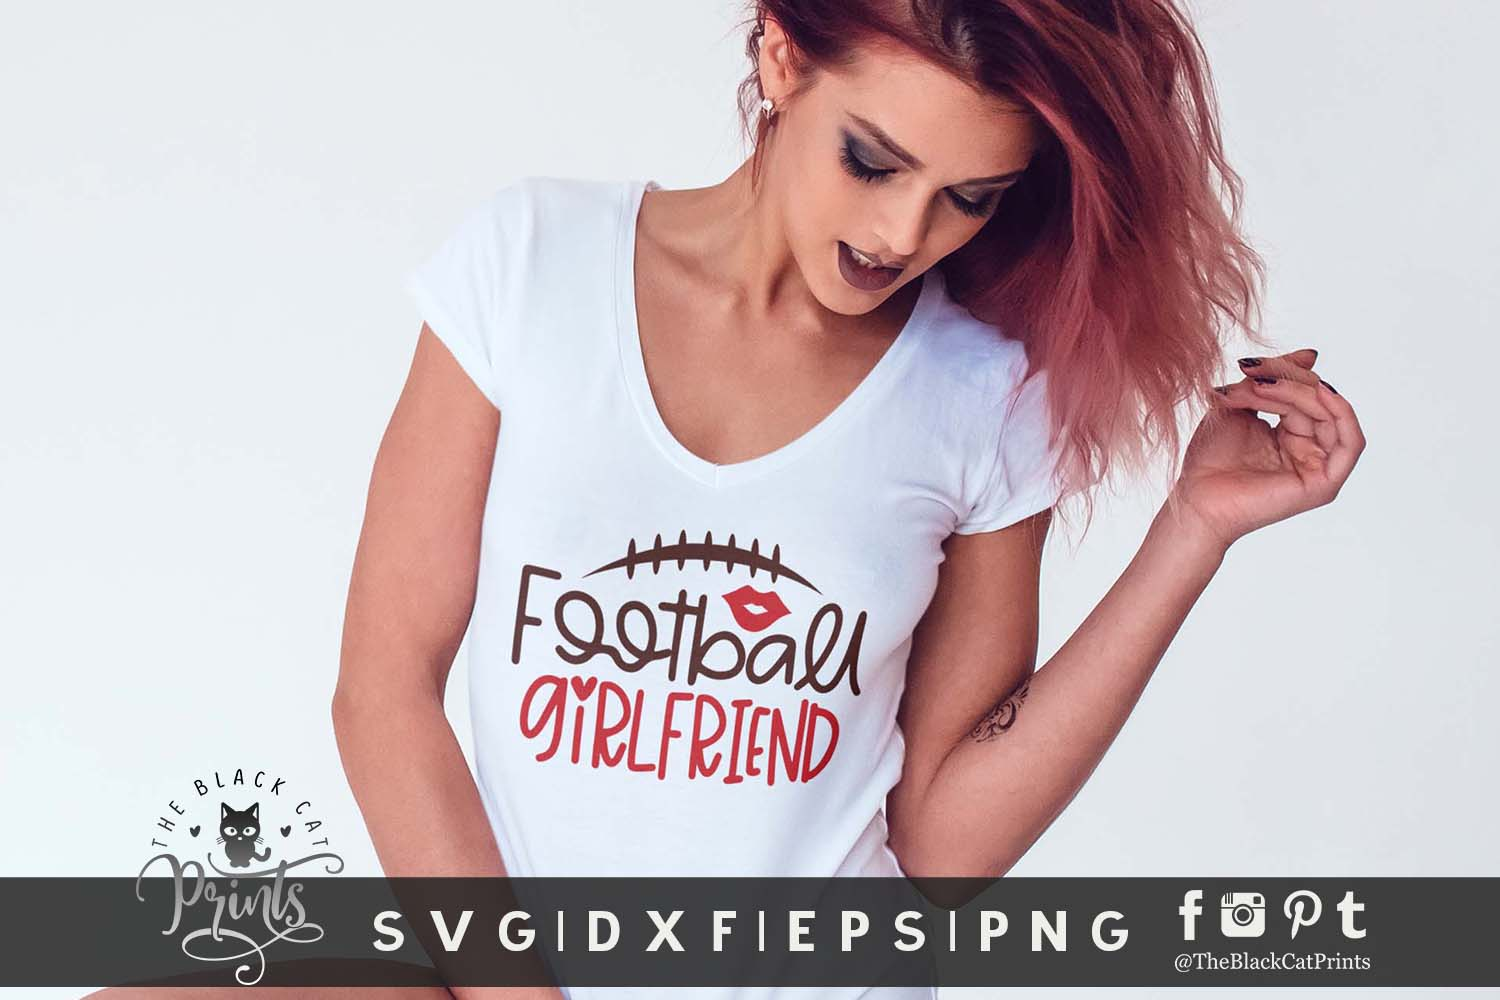 Football Girlfriend SVG DXF EPS PNG Football girl cut file example image 2